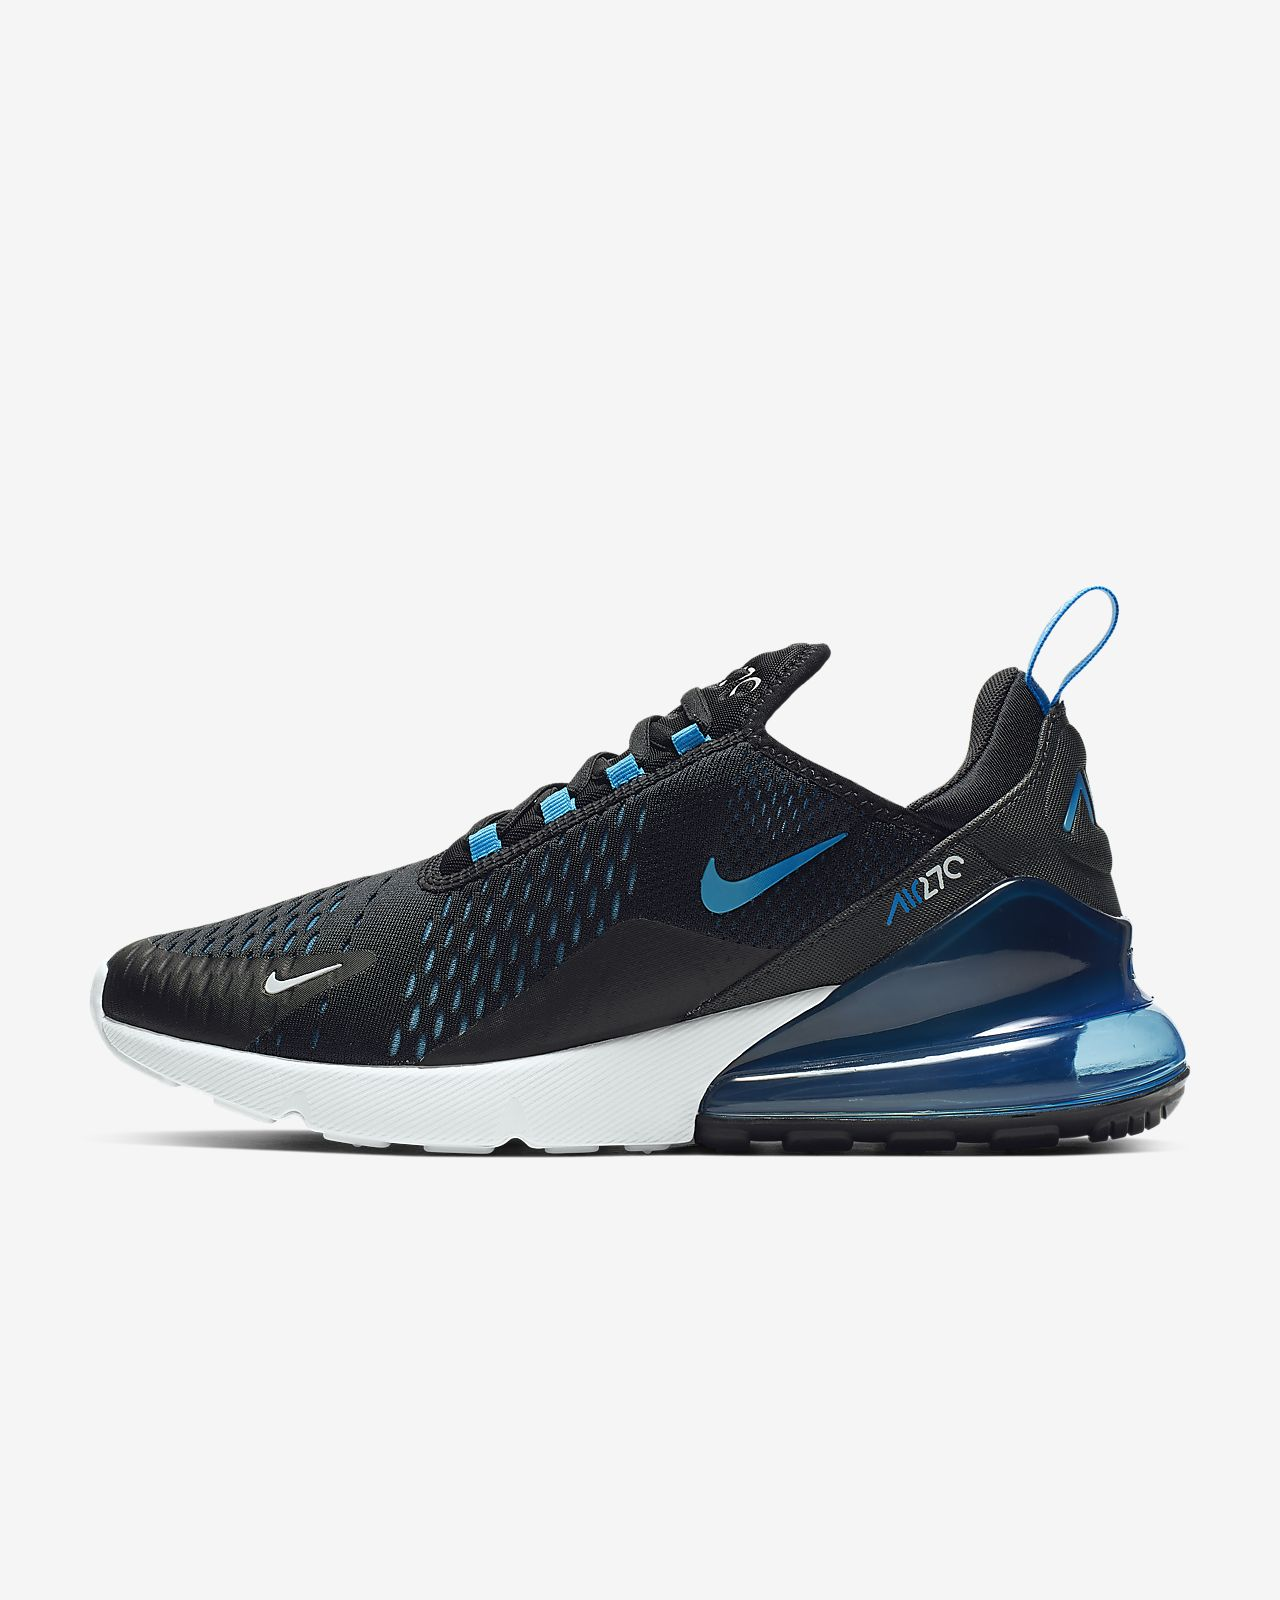 meet 051fb 1302c Men s Shoe. Nike Air Max 270